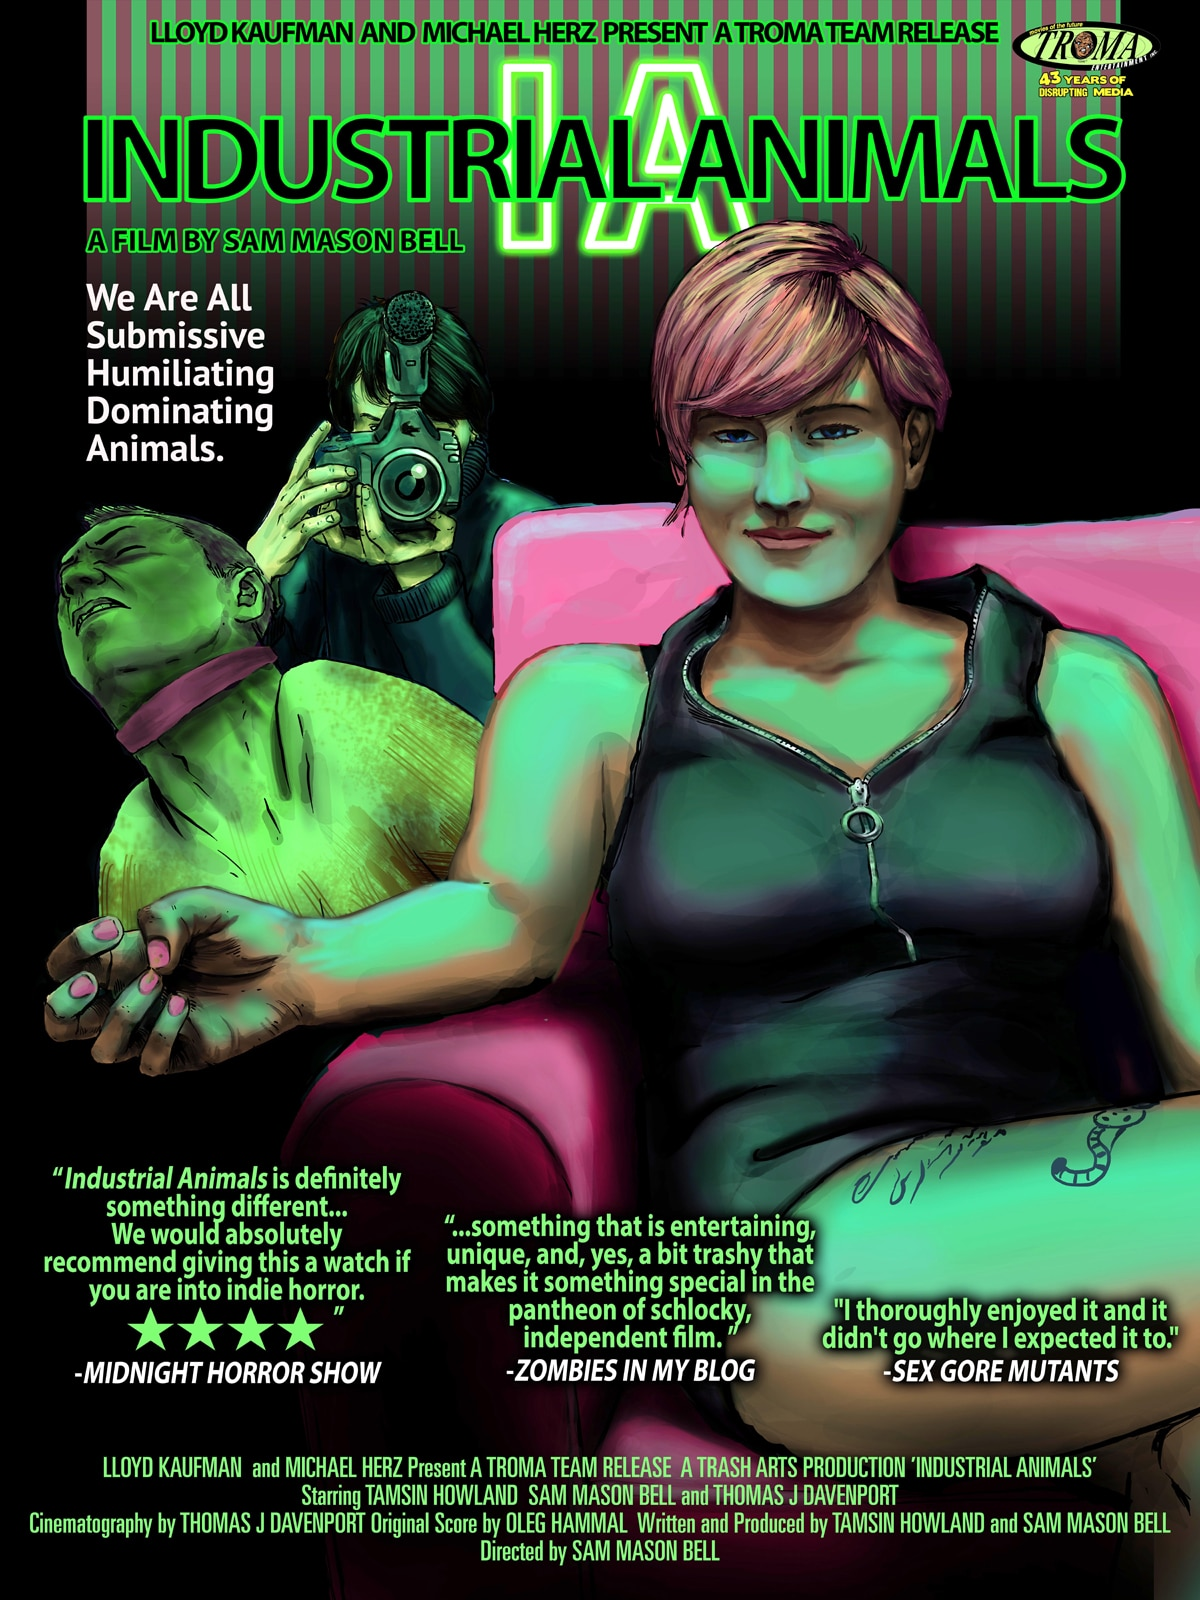 INDUSTRIAL ANIMALS POSTER - Troma's Industrial Animals - Exclusive Poster and NSFW Trailer Premiere